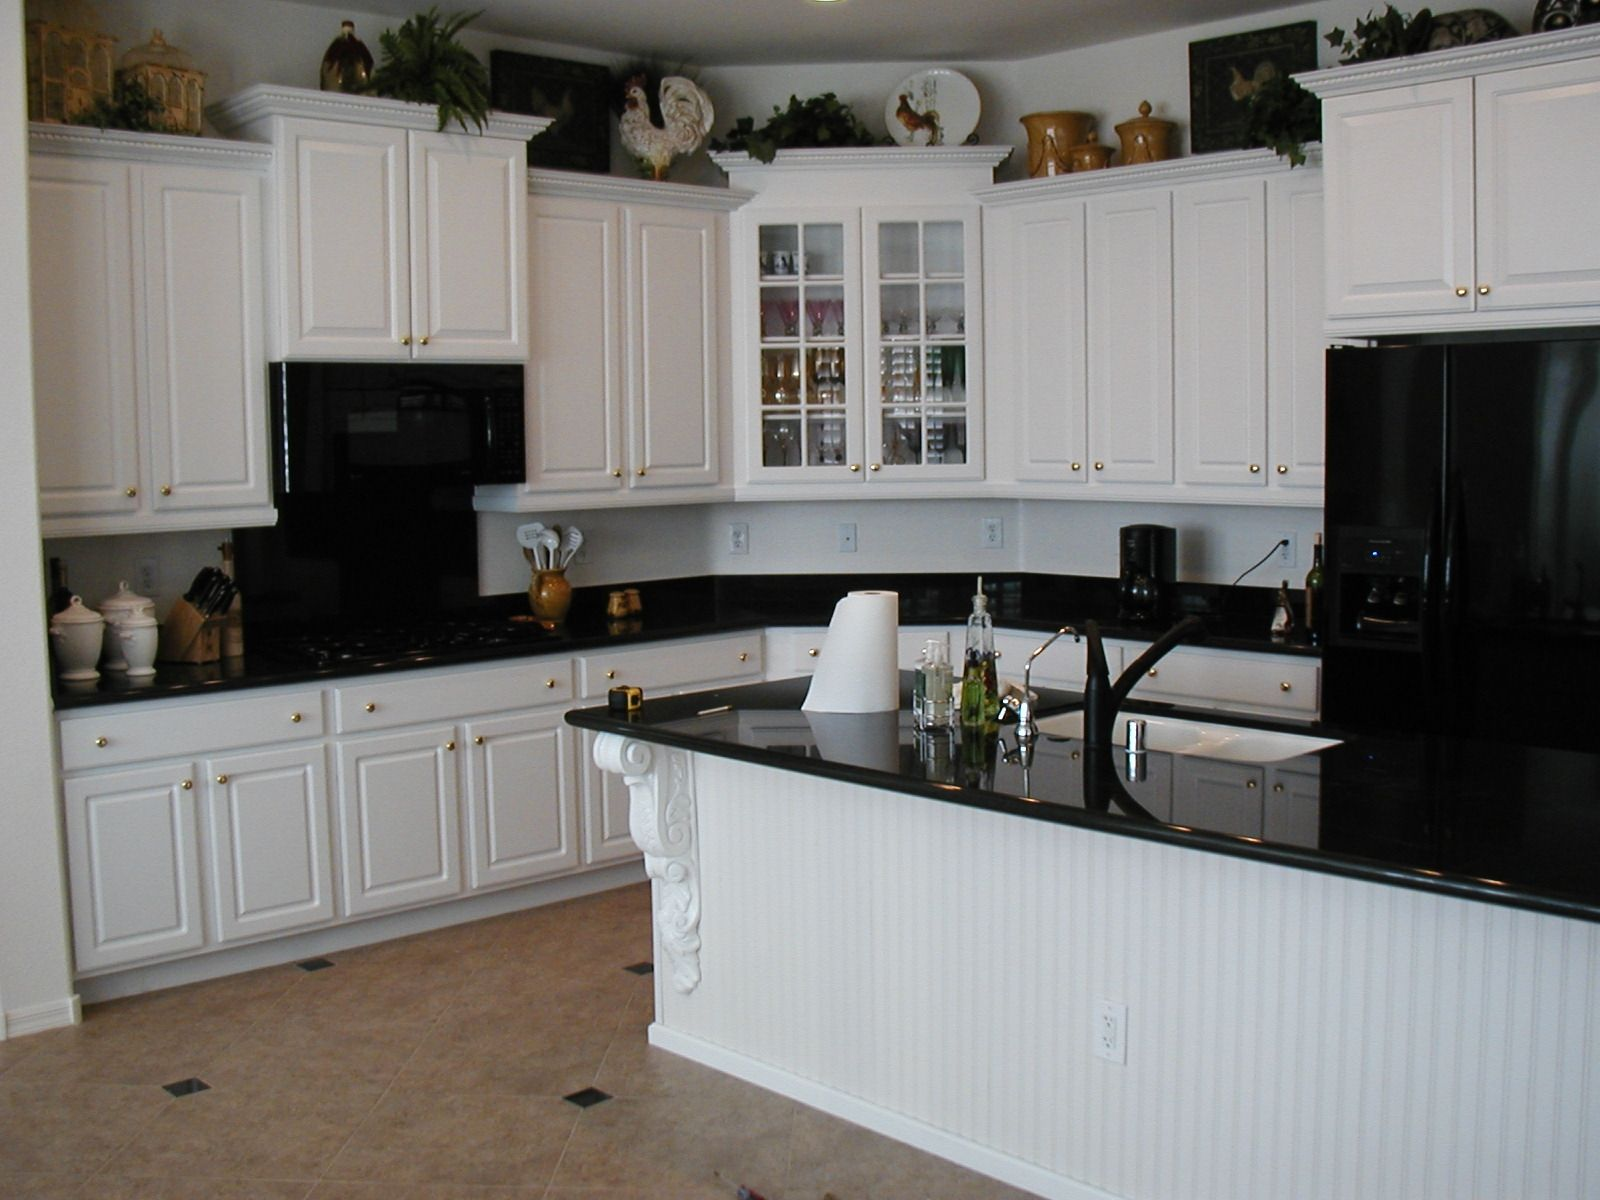 Uncategorized Black Appliances Kitchen Design creamy white kitchen cabinets with black appliances are ever stylish